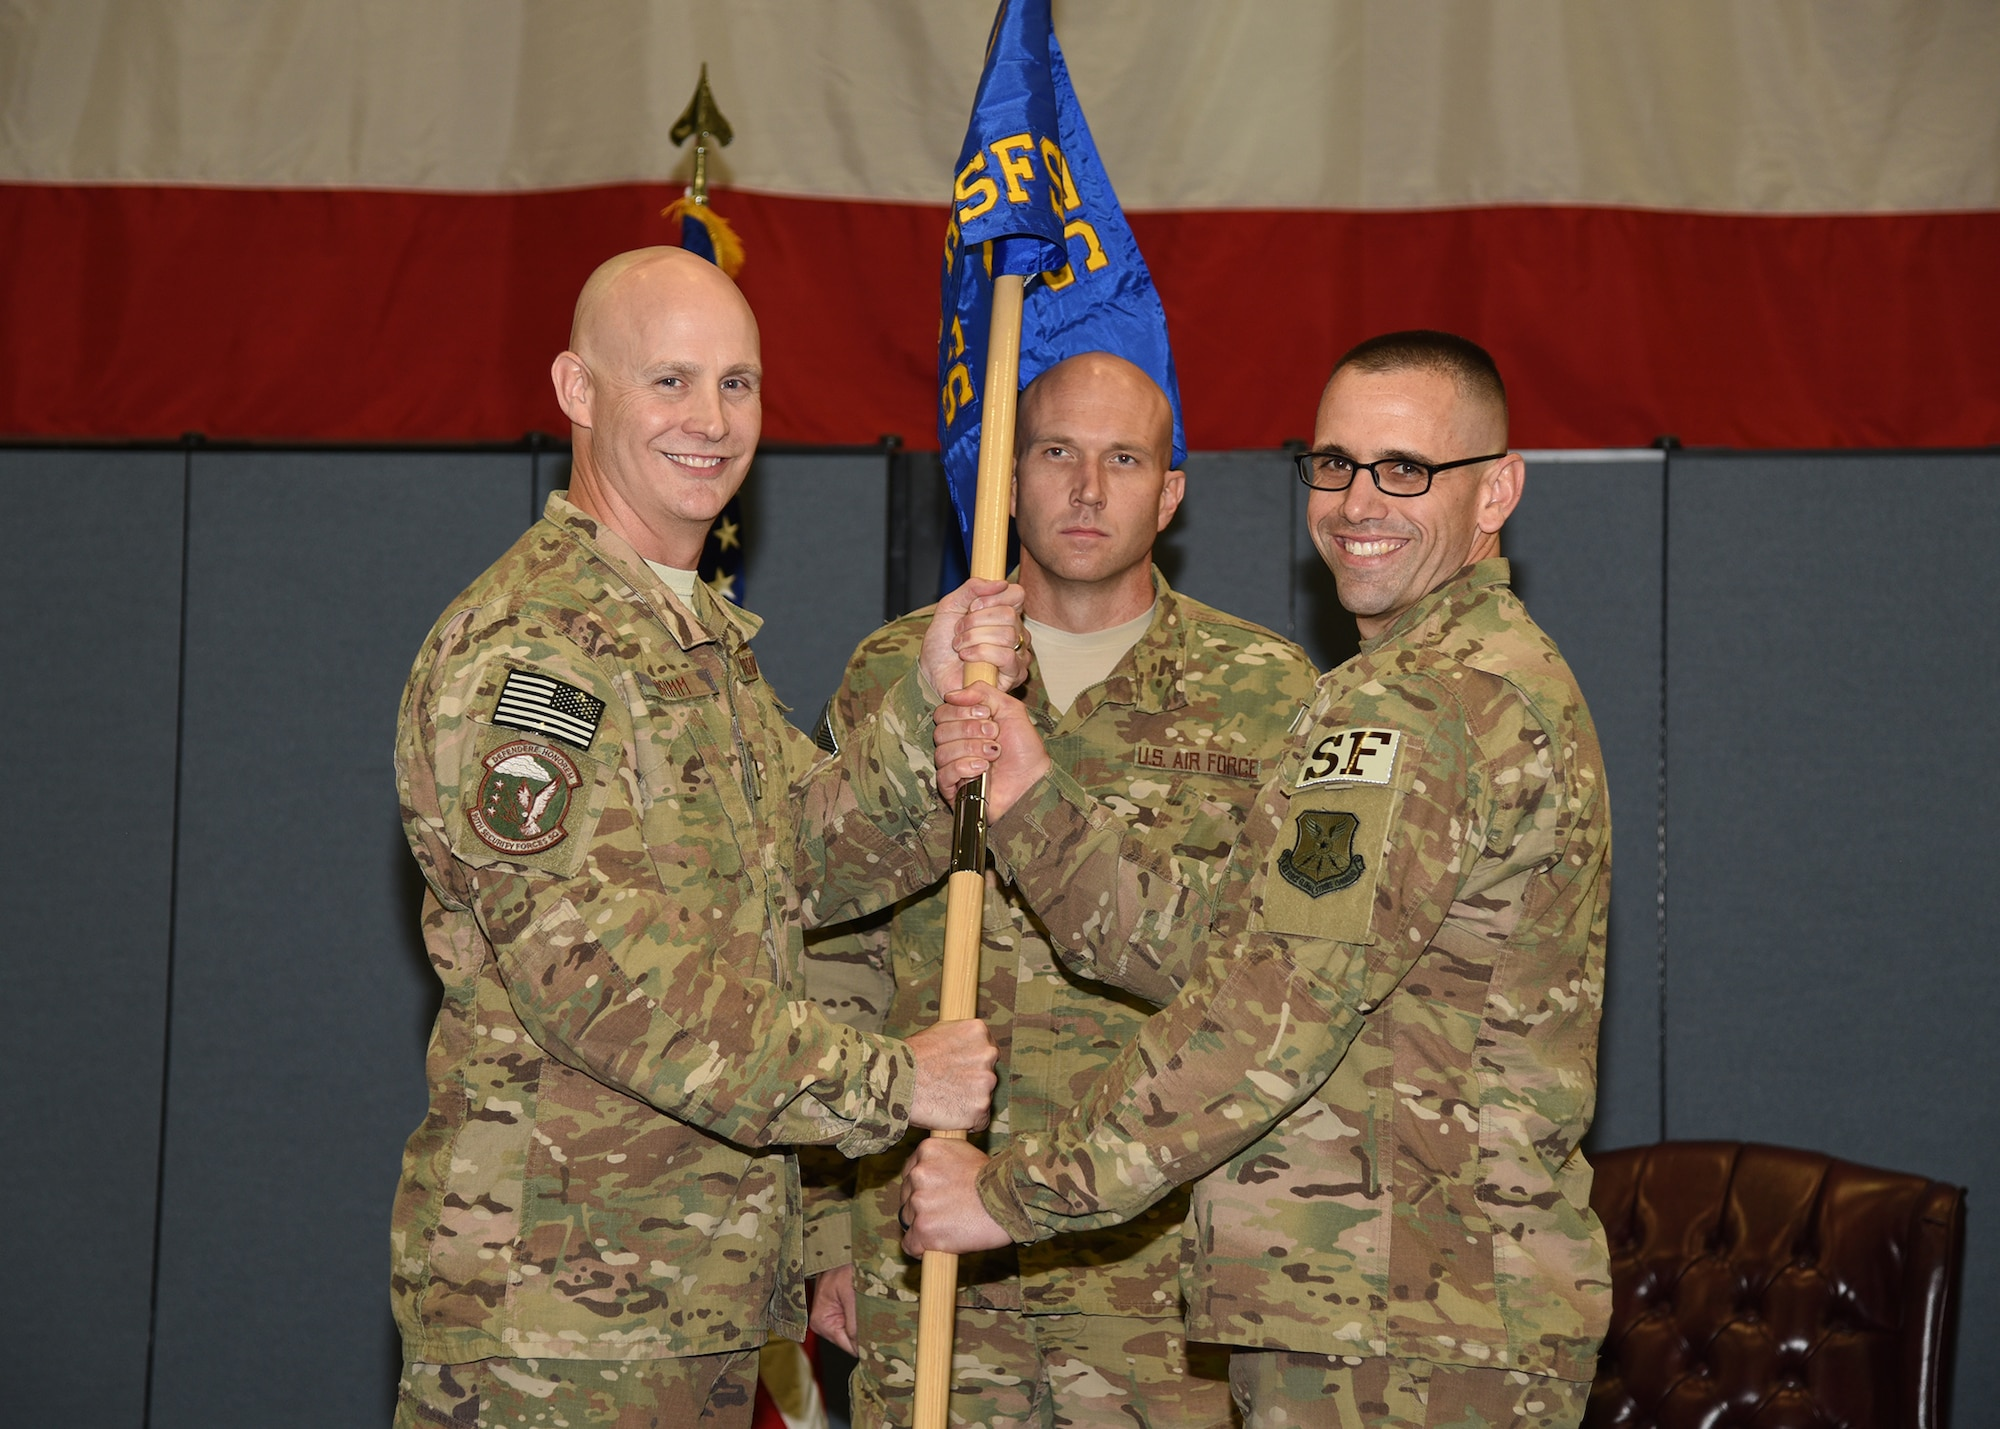 Colonel John Grimm, 90th Security Forces Group commander, passes the guidon to Major David Lycan, 890th Missile Security Forces Squadron commander, during the MSOC change and assumption of command ceremony at F.E. Warren Air Force Base, Wyo., Sept. 20, 2017.